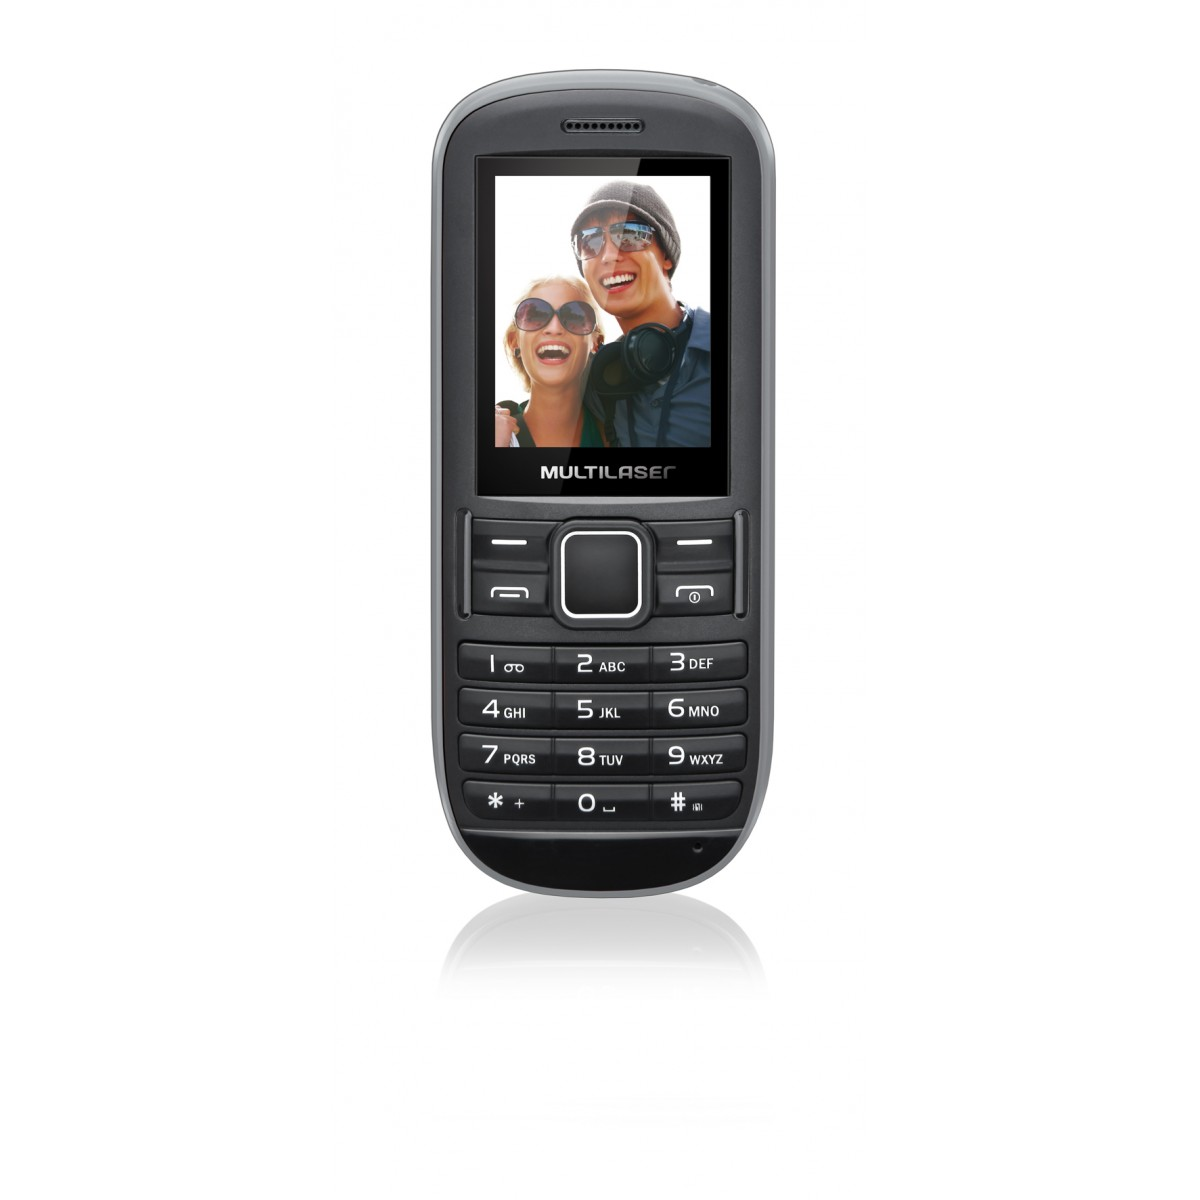 Celular Fun P3201 2 Chips Quadriband Camera MP3/4 FM Cinza/Preto